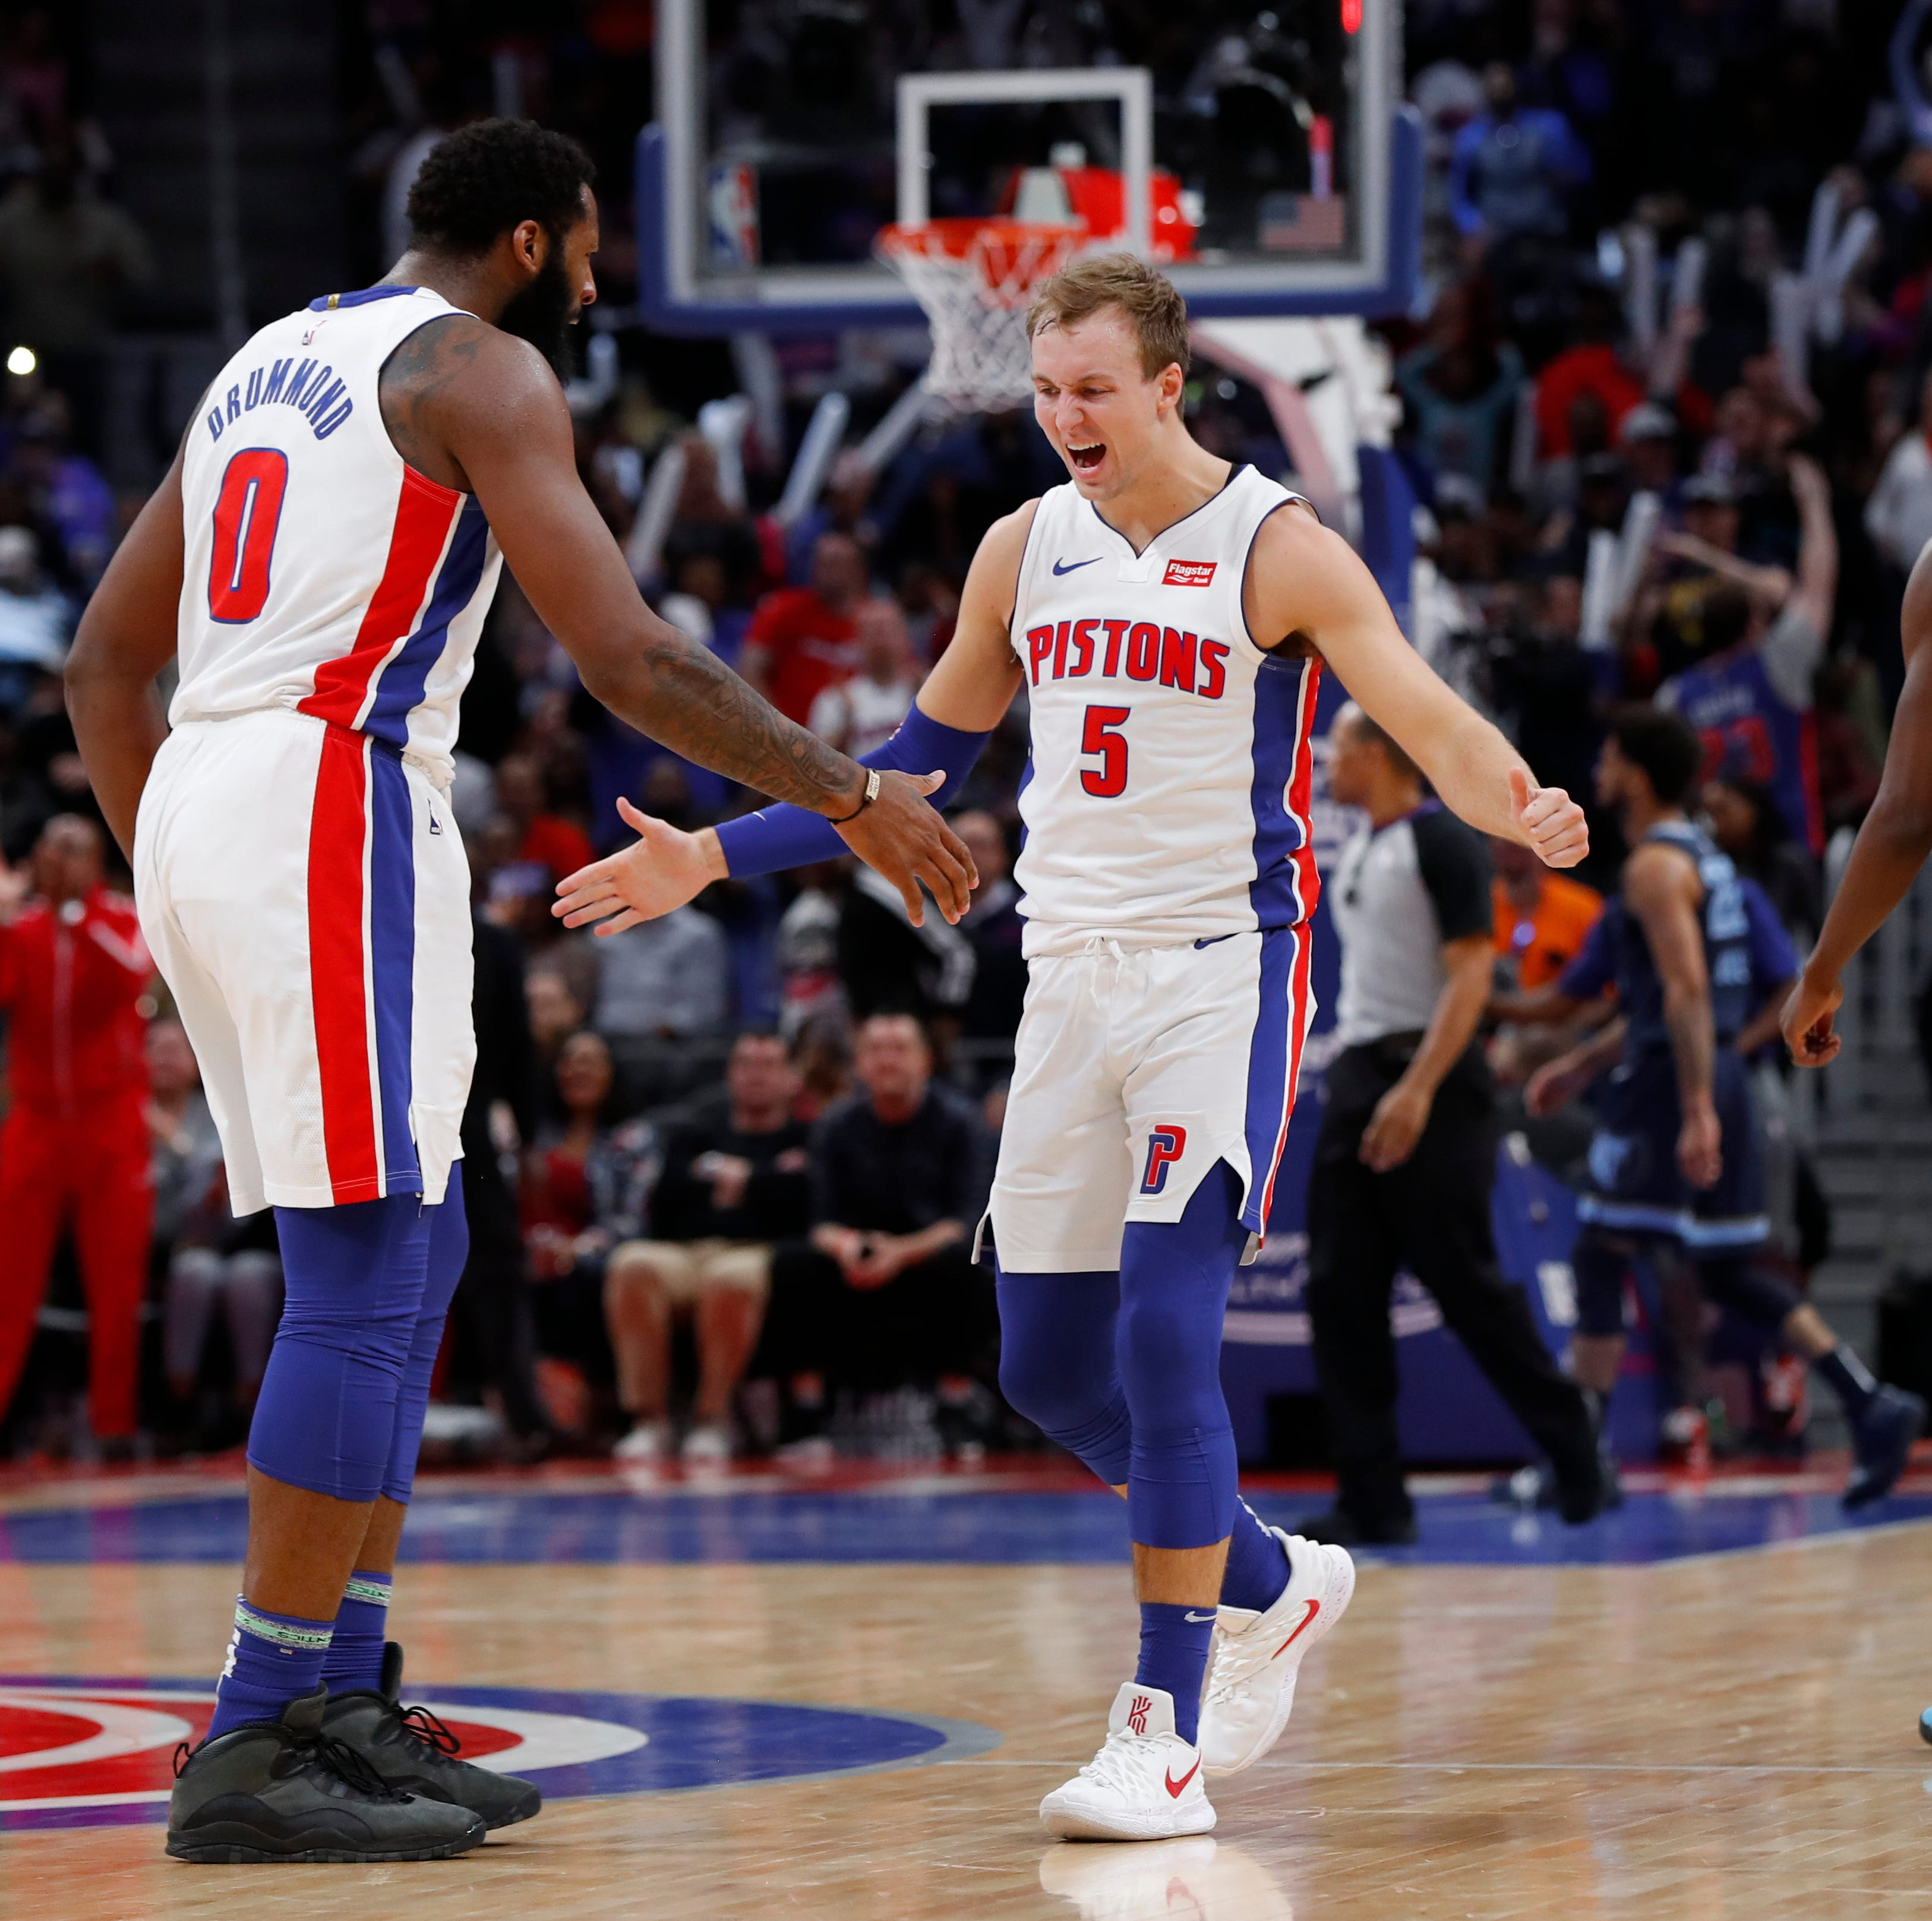 Pistons' stunning rally a reminder of what 'Detroit Basketball' can be